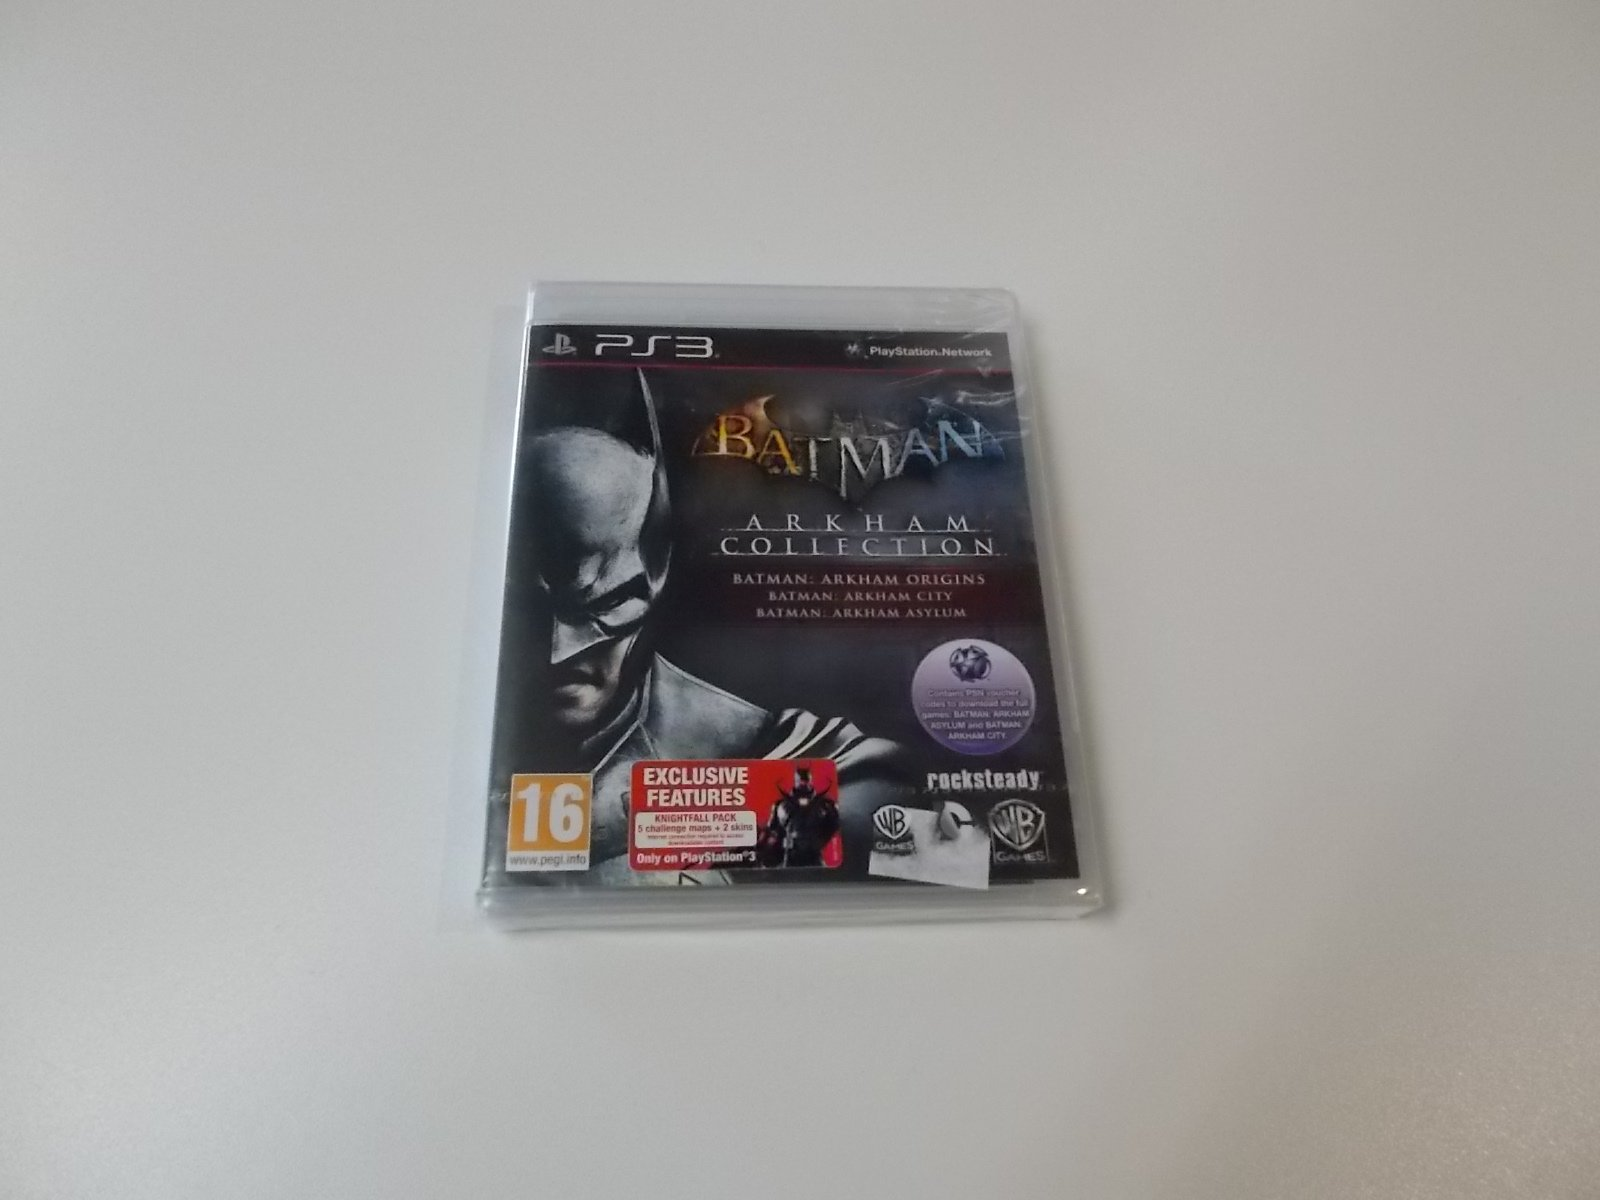 Batman arkham collection - GRA Ps3 - Opole 0447